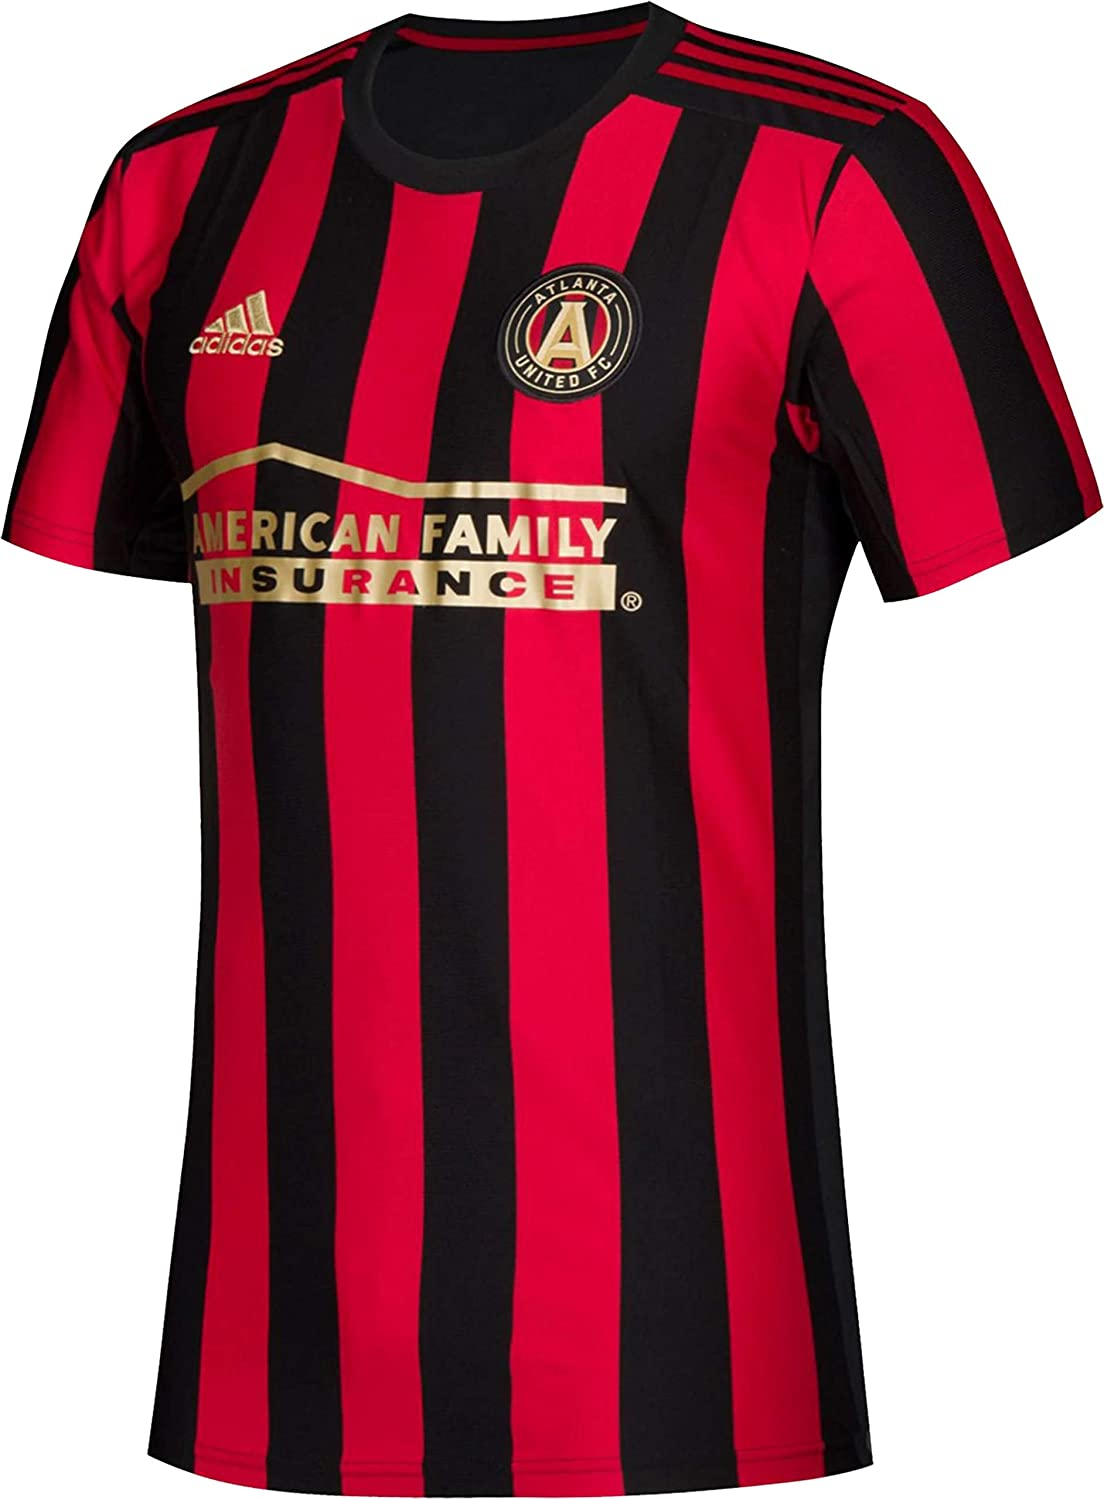 premium selection 5de05 98f5a adidas Atlanta United FC Youth Replica Primary Jersey